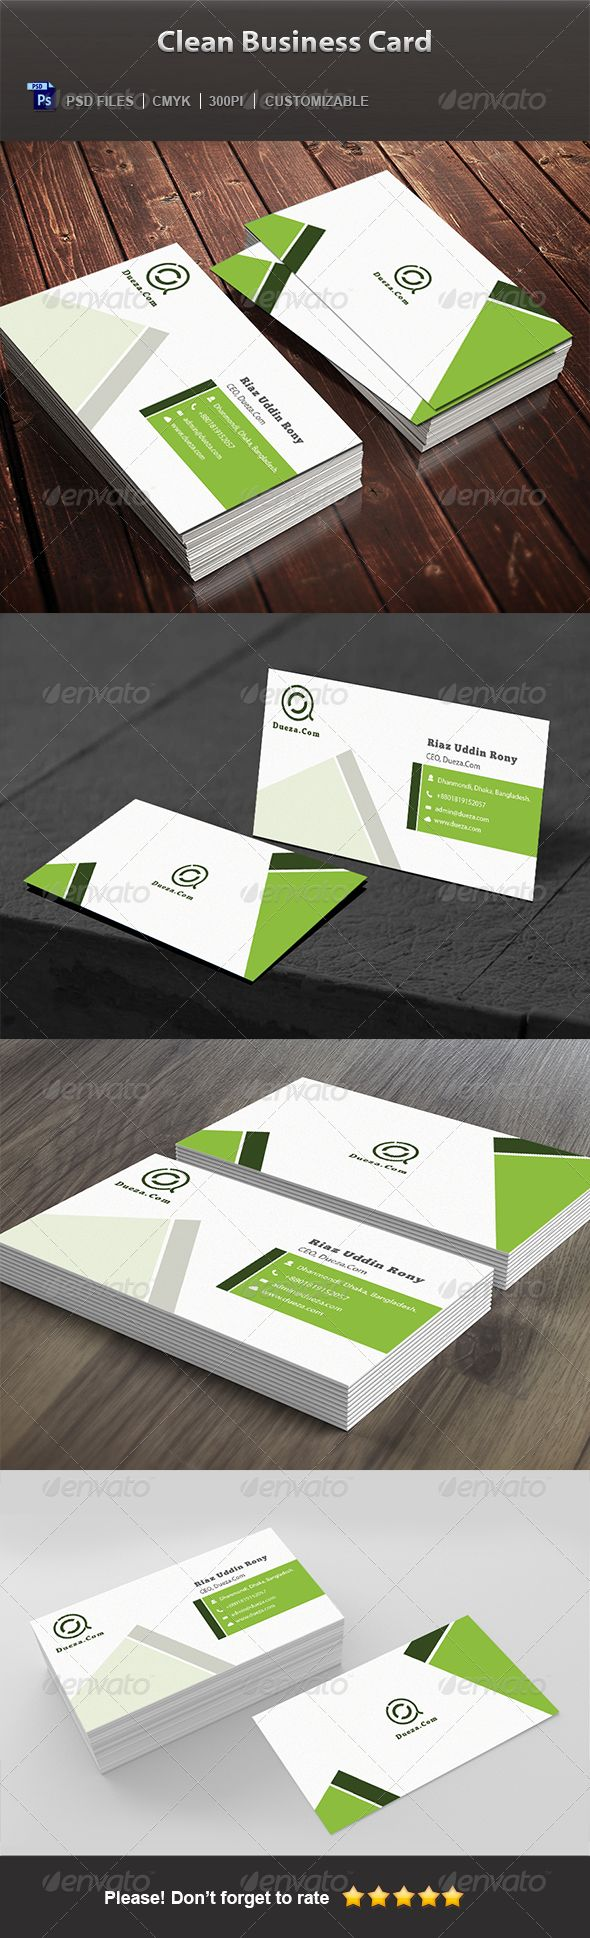 51 best Blog for Modern Creative Business Card Design images on ...